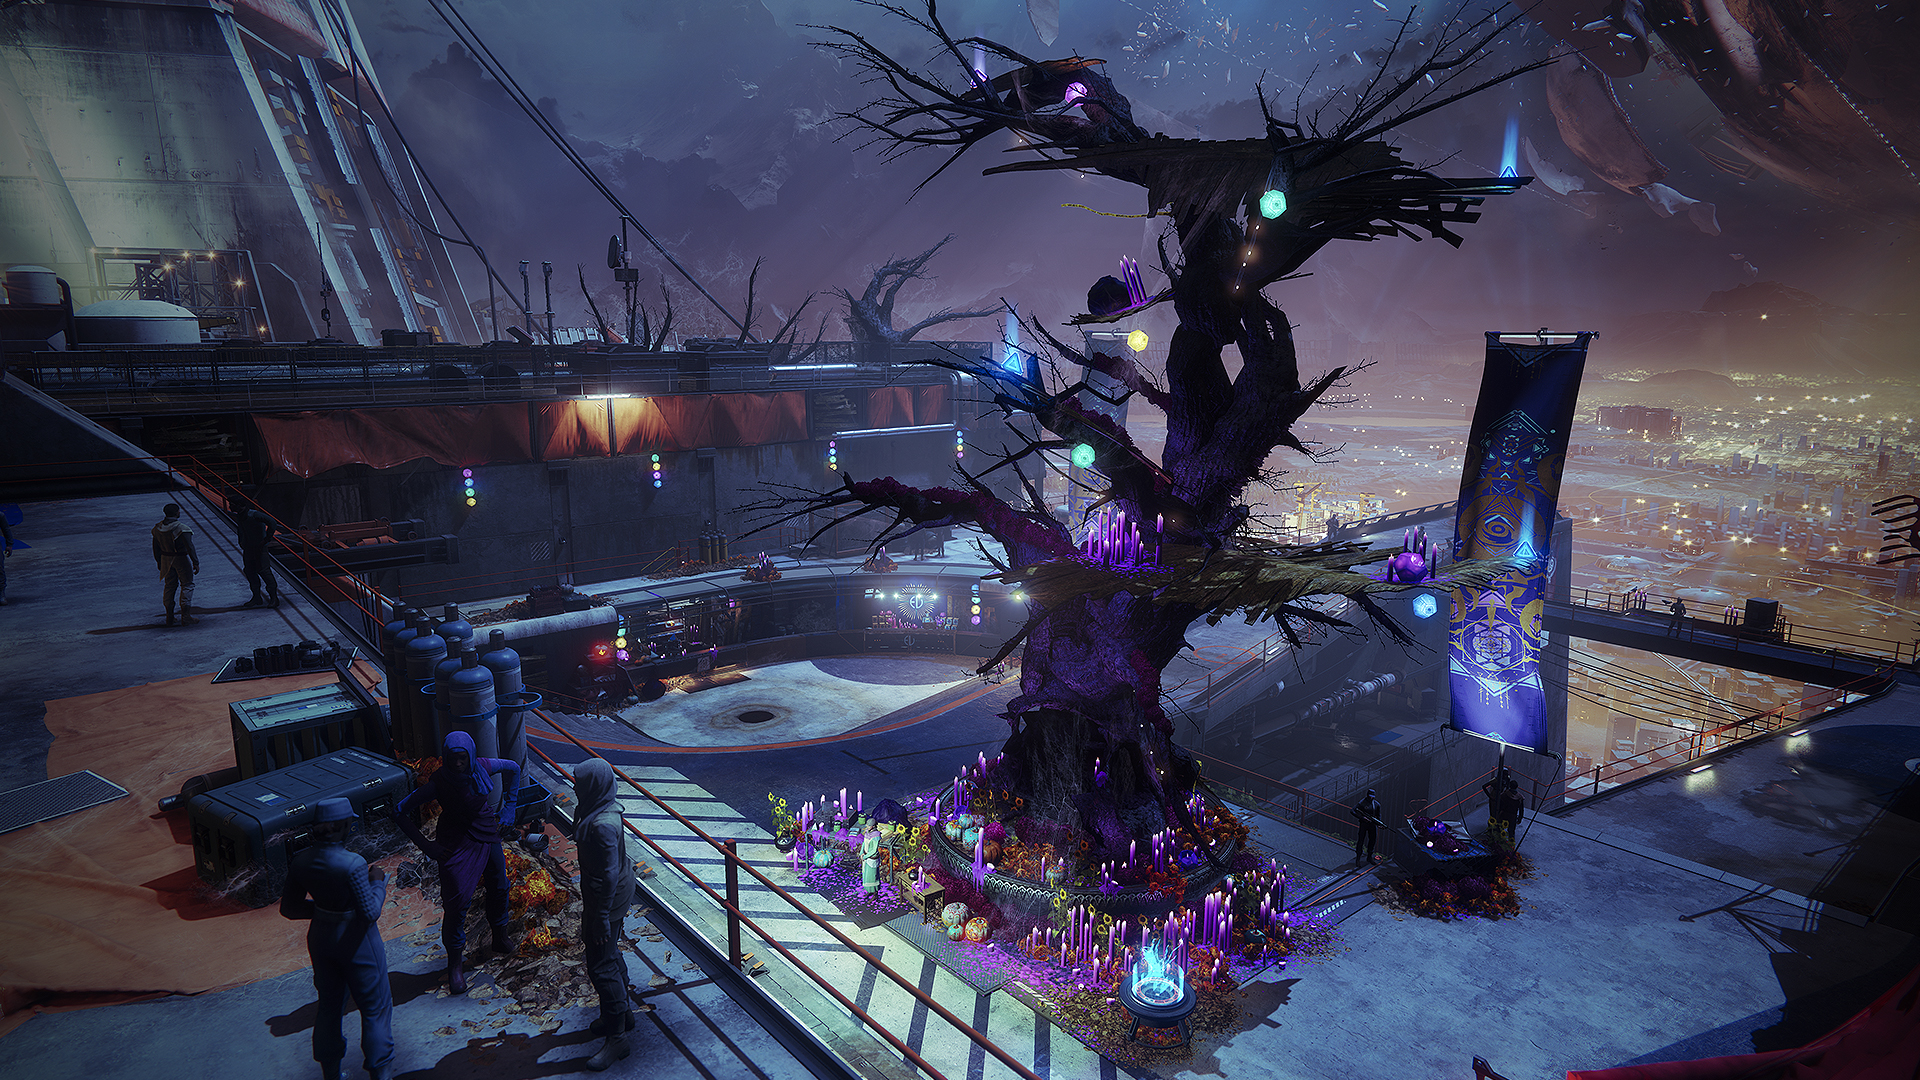 Destiny 2's Halloween event has spooky masks and a haunted gauntlet